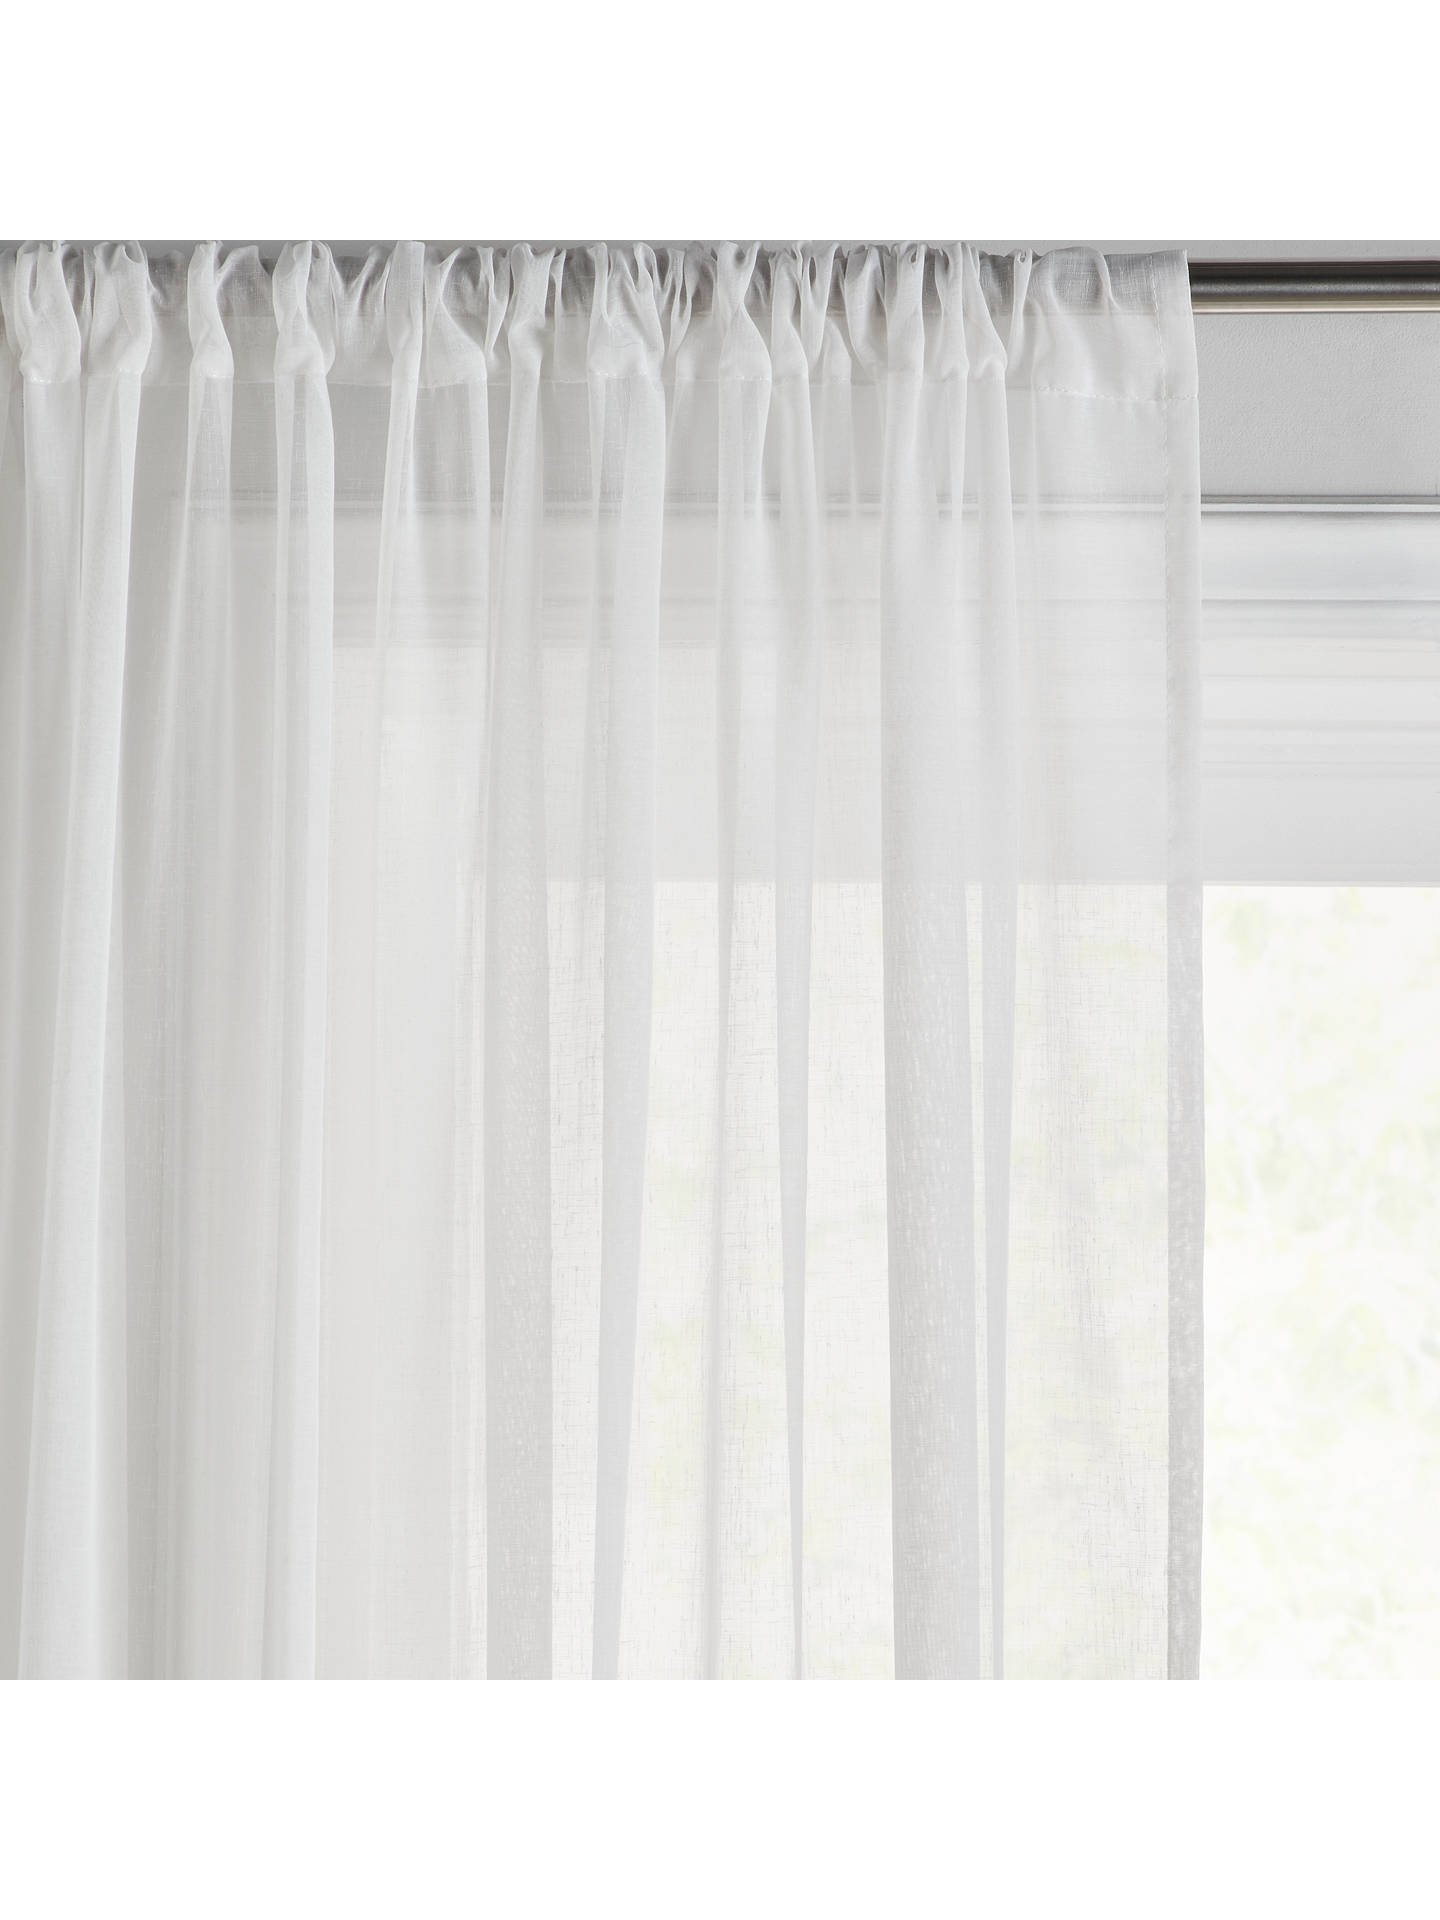 BuyJohn Lewis & Partners Ombre Voile Panel, Steel, W150 x Drop 150cm Online at johnlewis.com